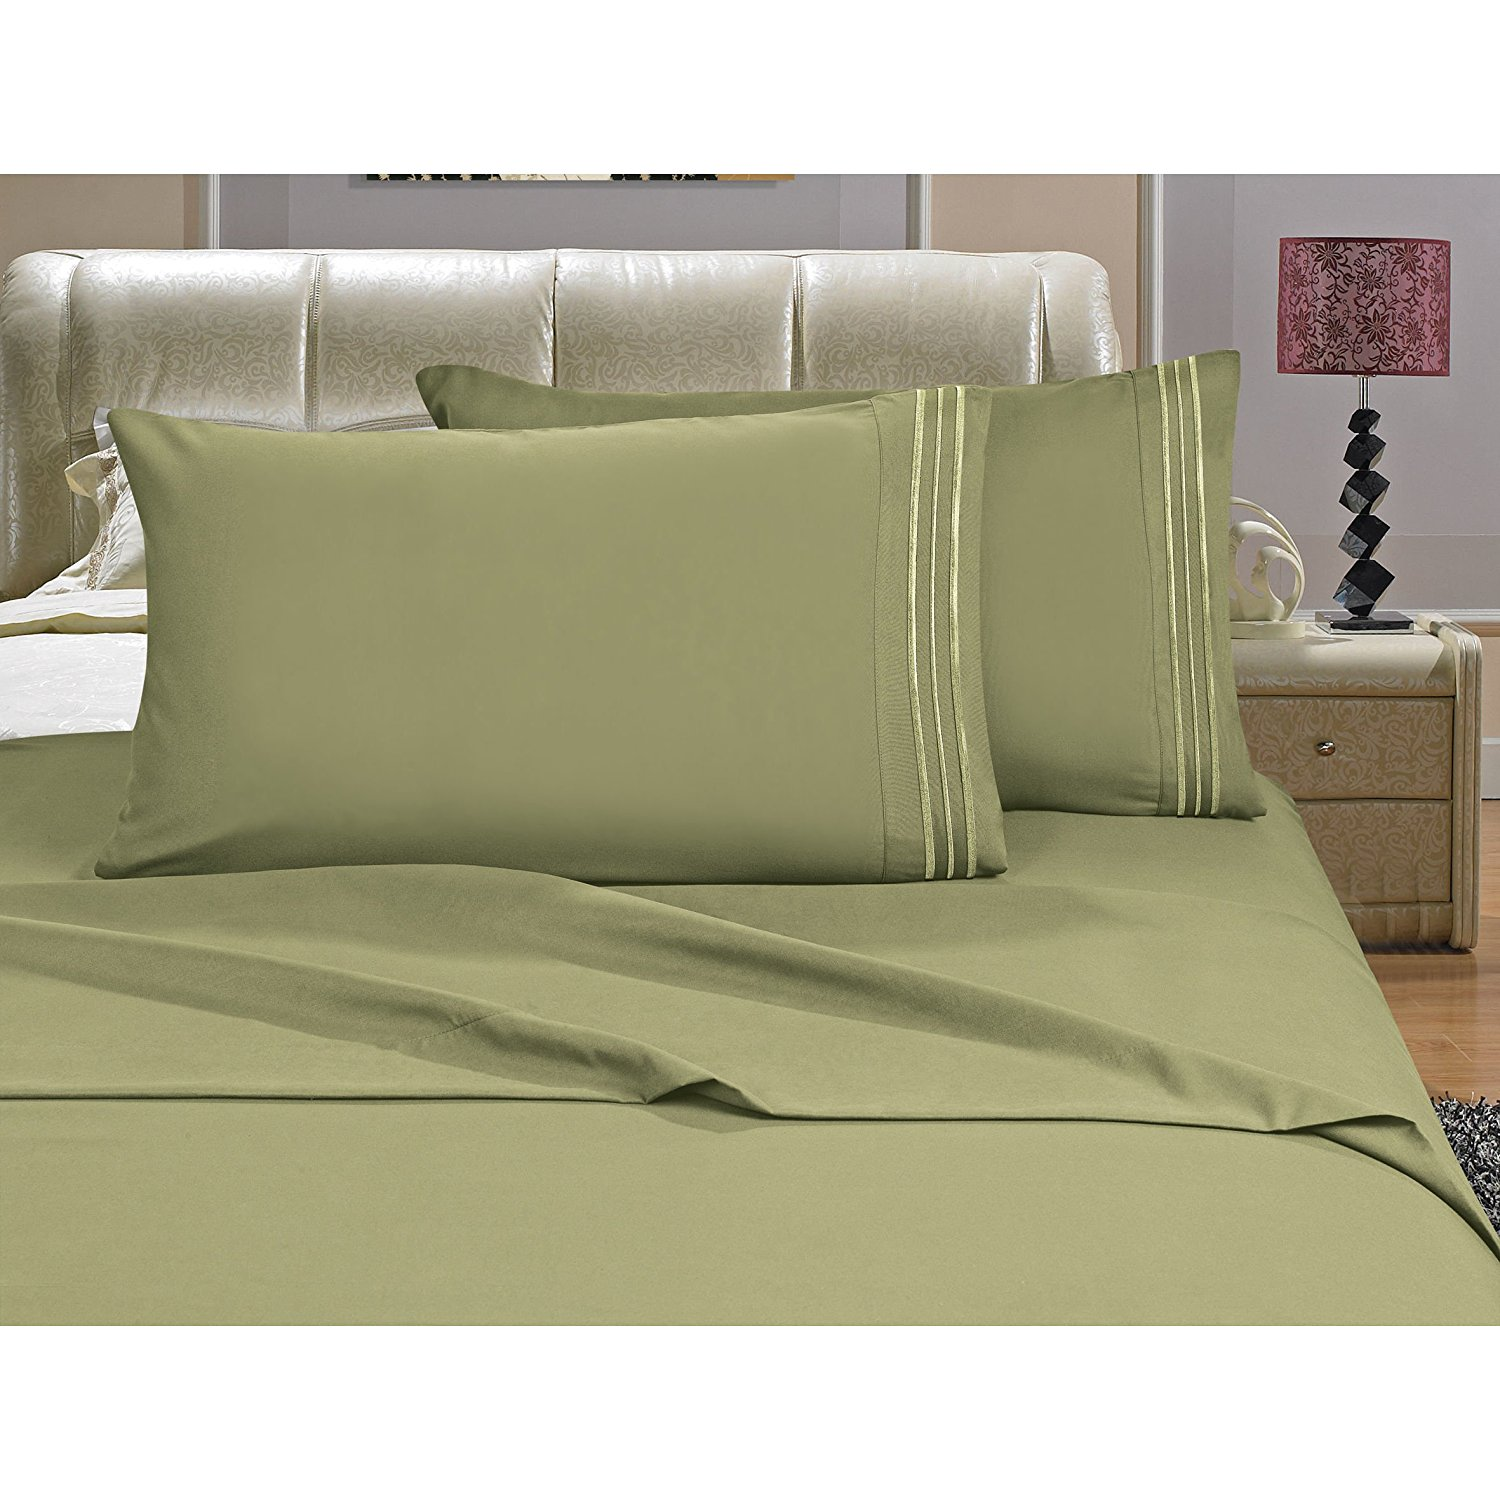 OSK 4 Piece Girls Sage Green Embroidered Stripe Sheet Full Set, Light Green Color Solid Pattern Design Kids Bedding, Luxurious Colorful Traditional Teen Themed, Polyester Microfiber